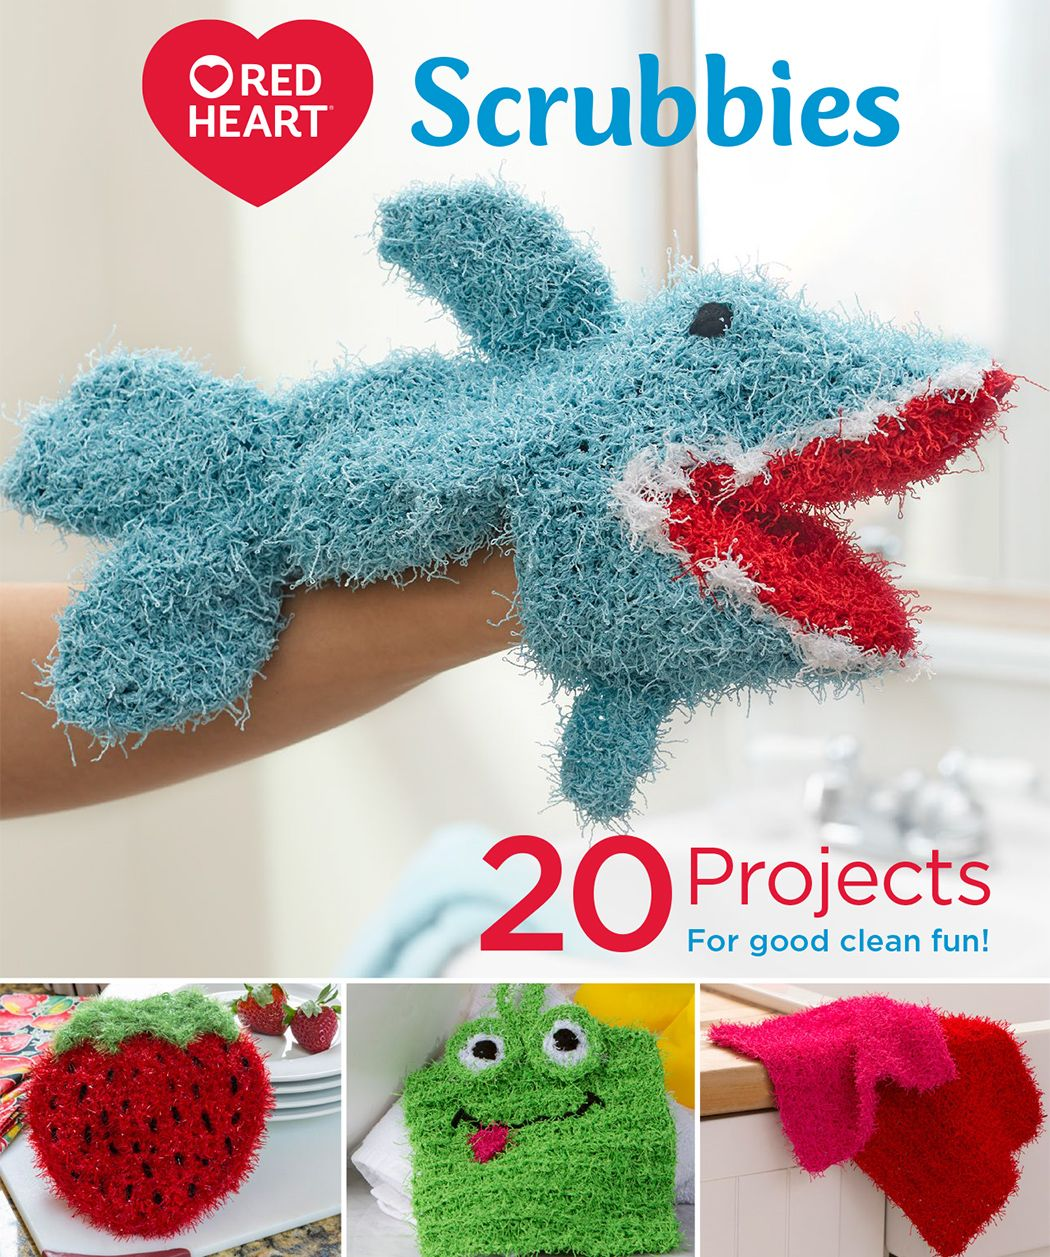 Red Heart Scrubbies: 20 Projects for good clean fun! -- Bring joy to ...